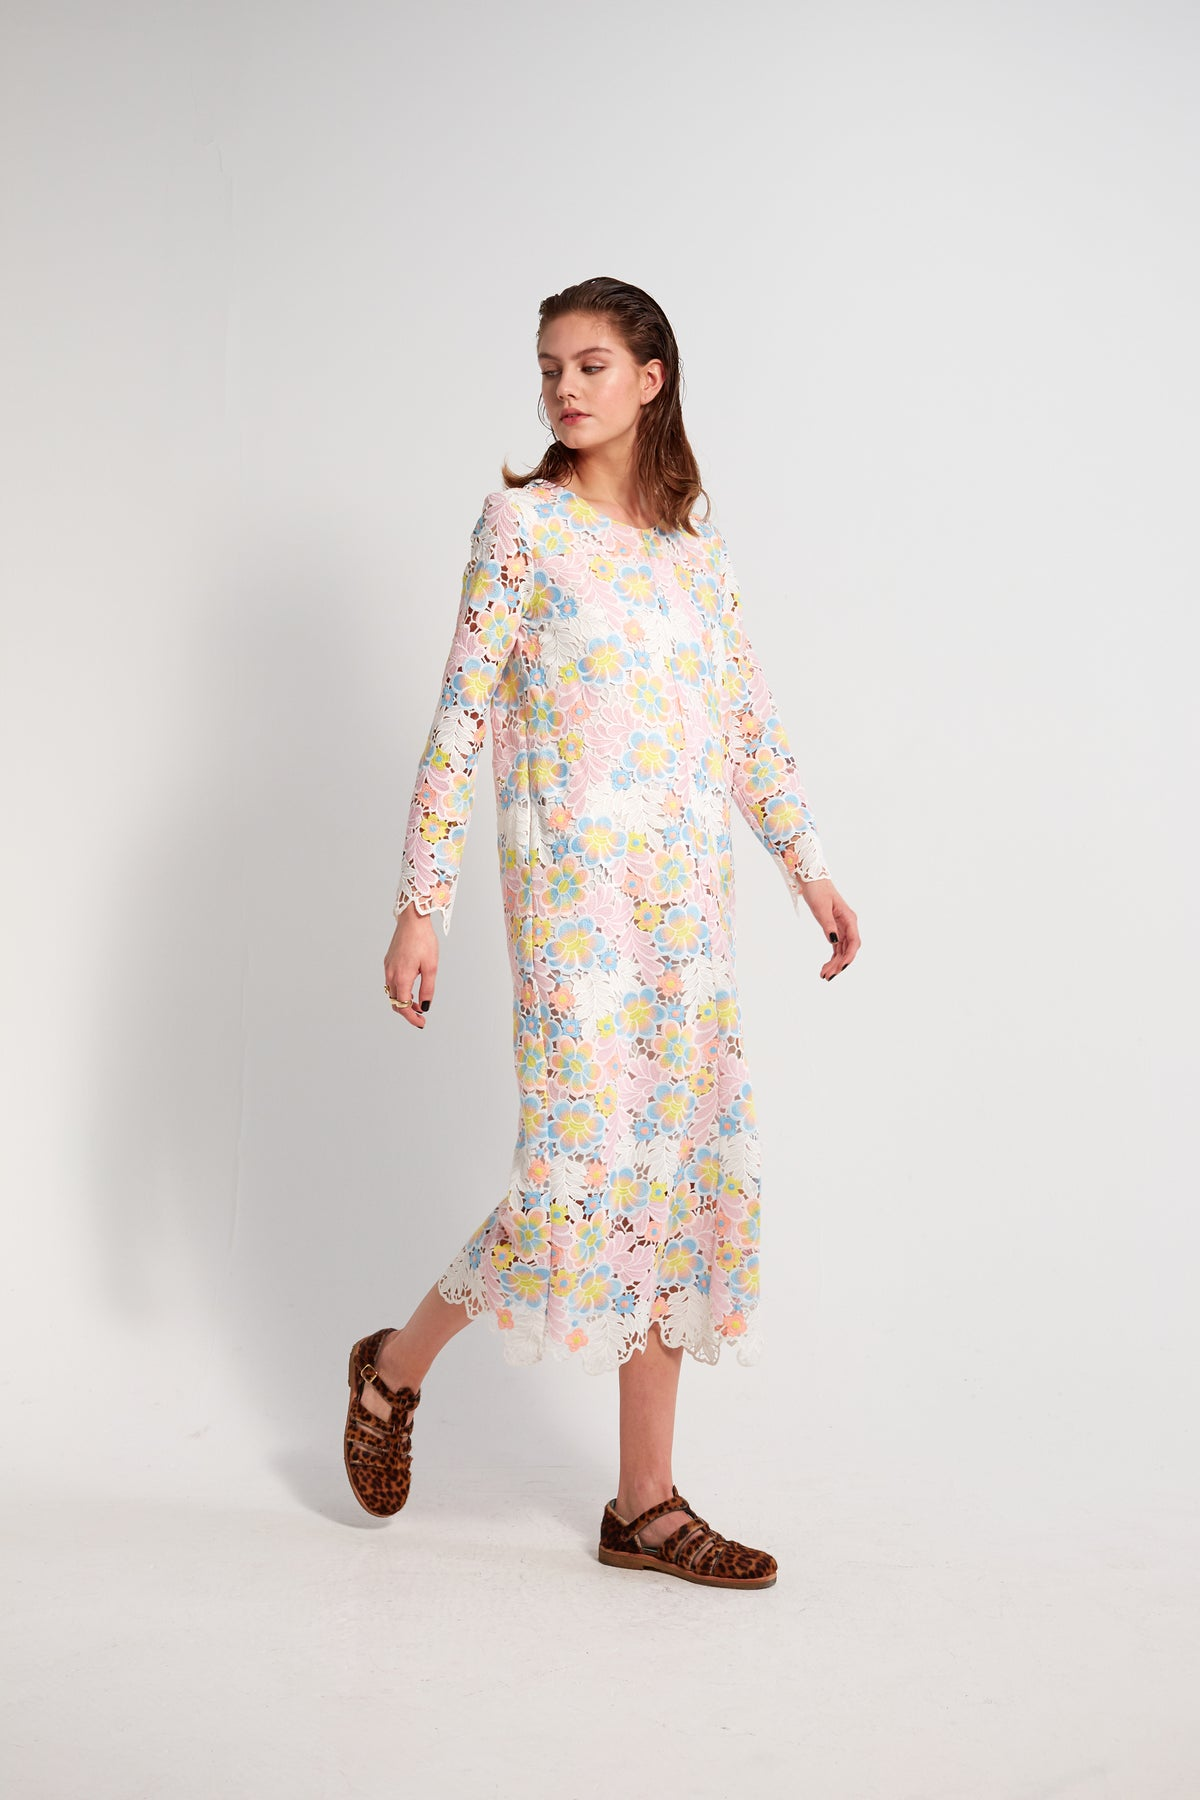 Marshall dress in rainbow lace